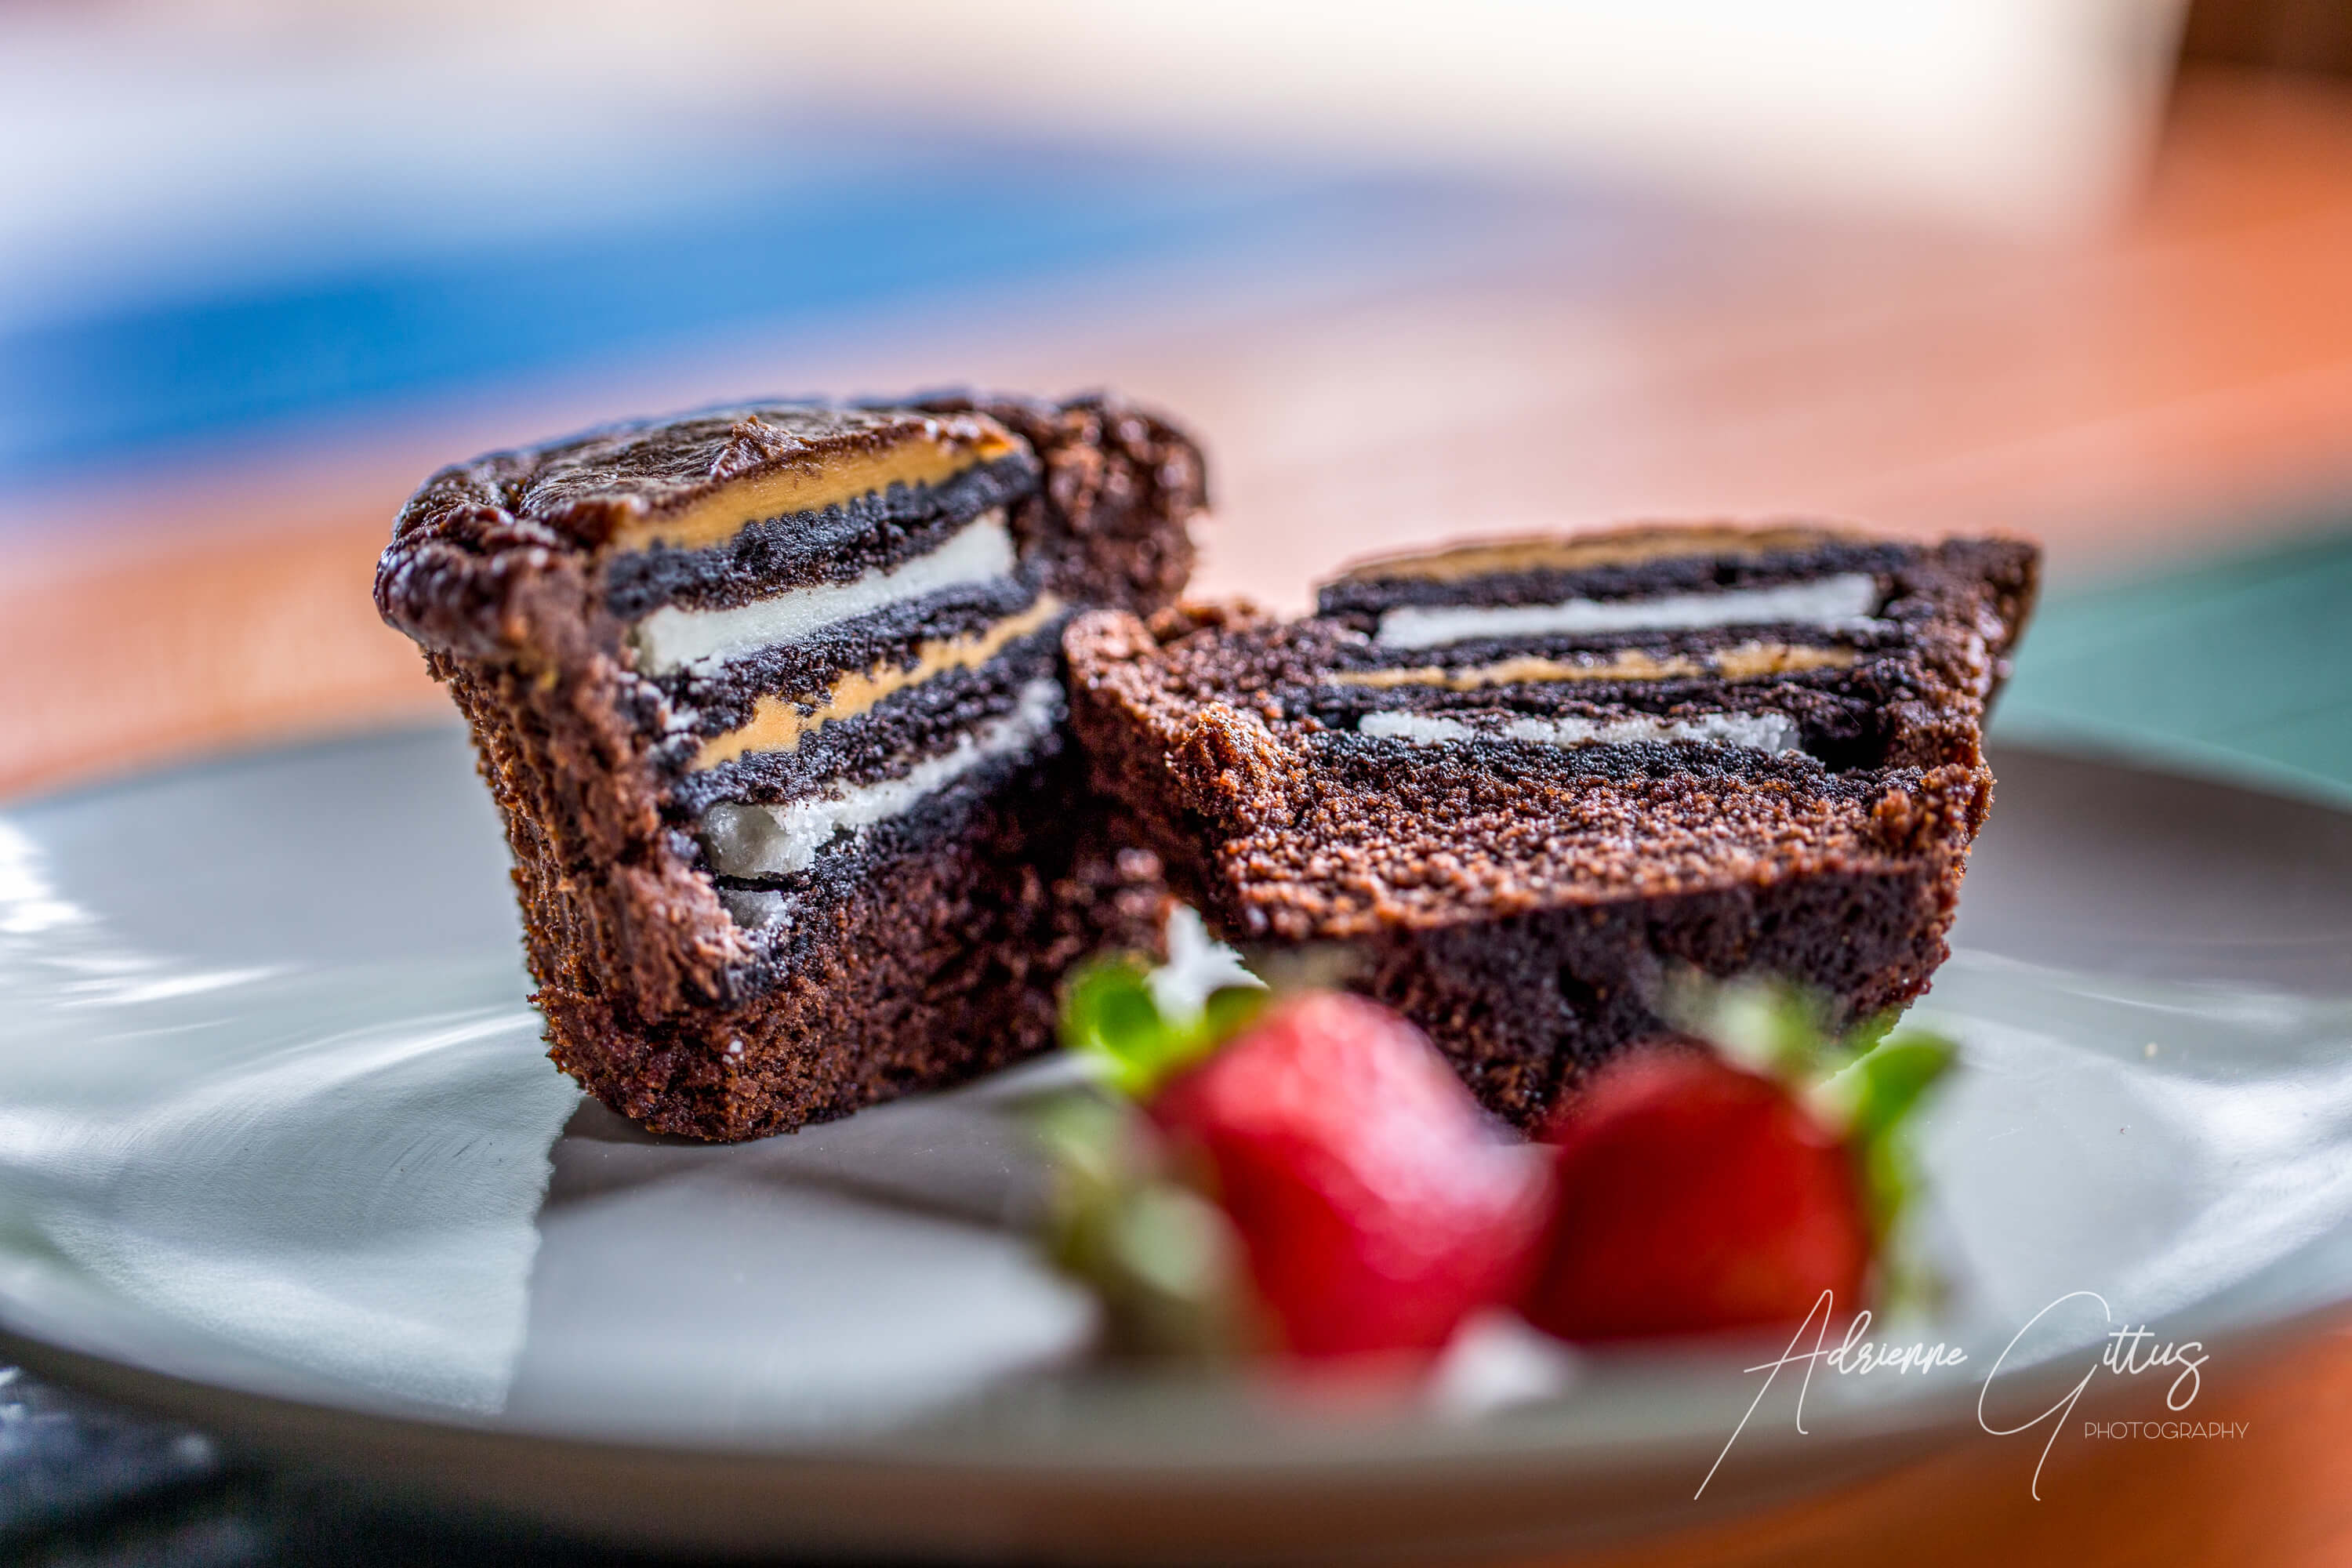 Peanut butter chocolate brownies on a plate, delicious